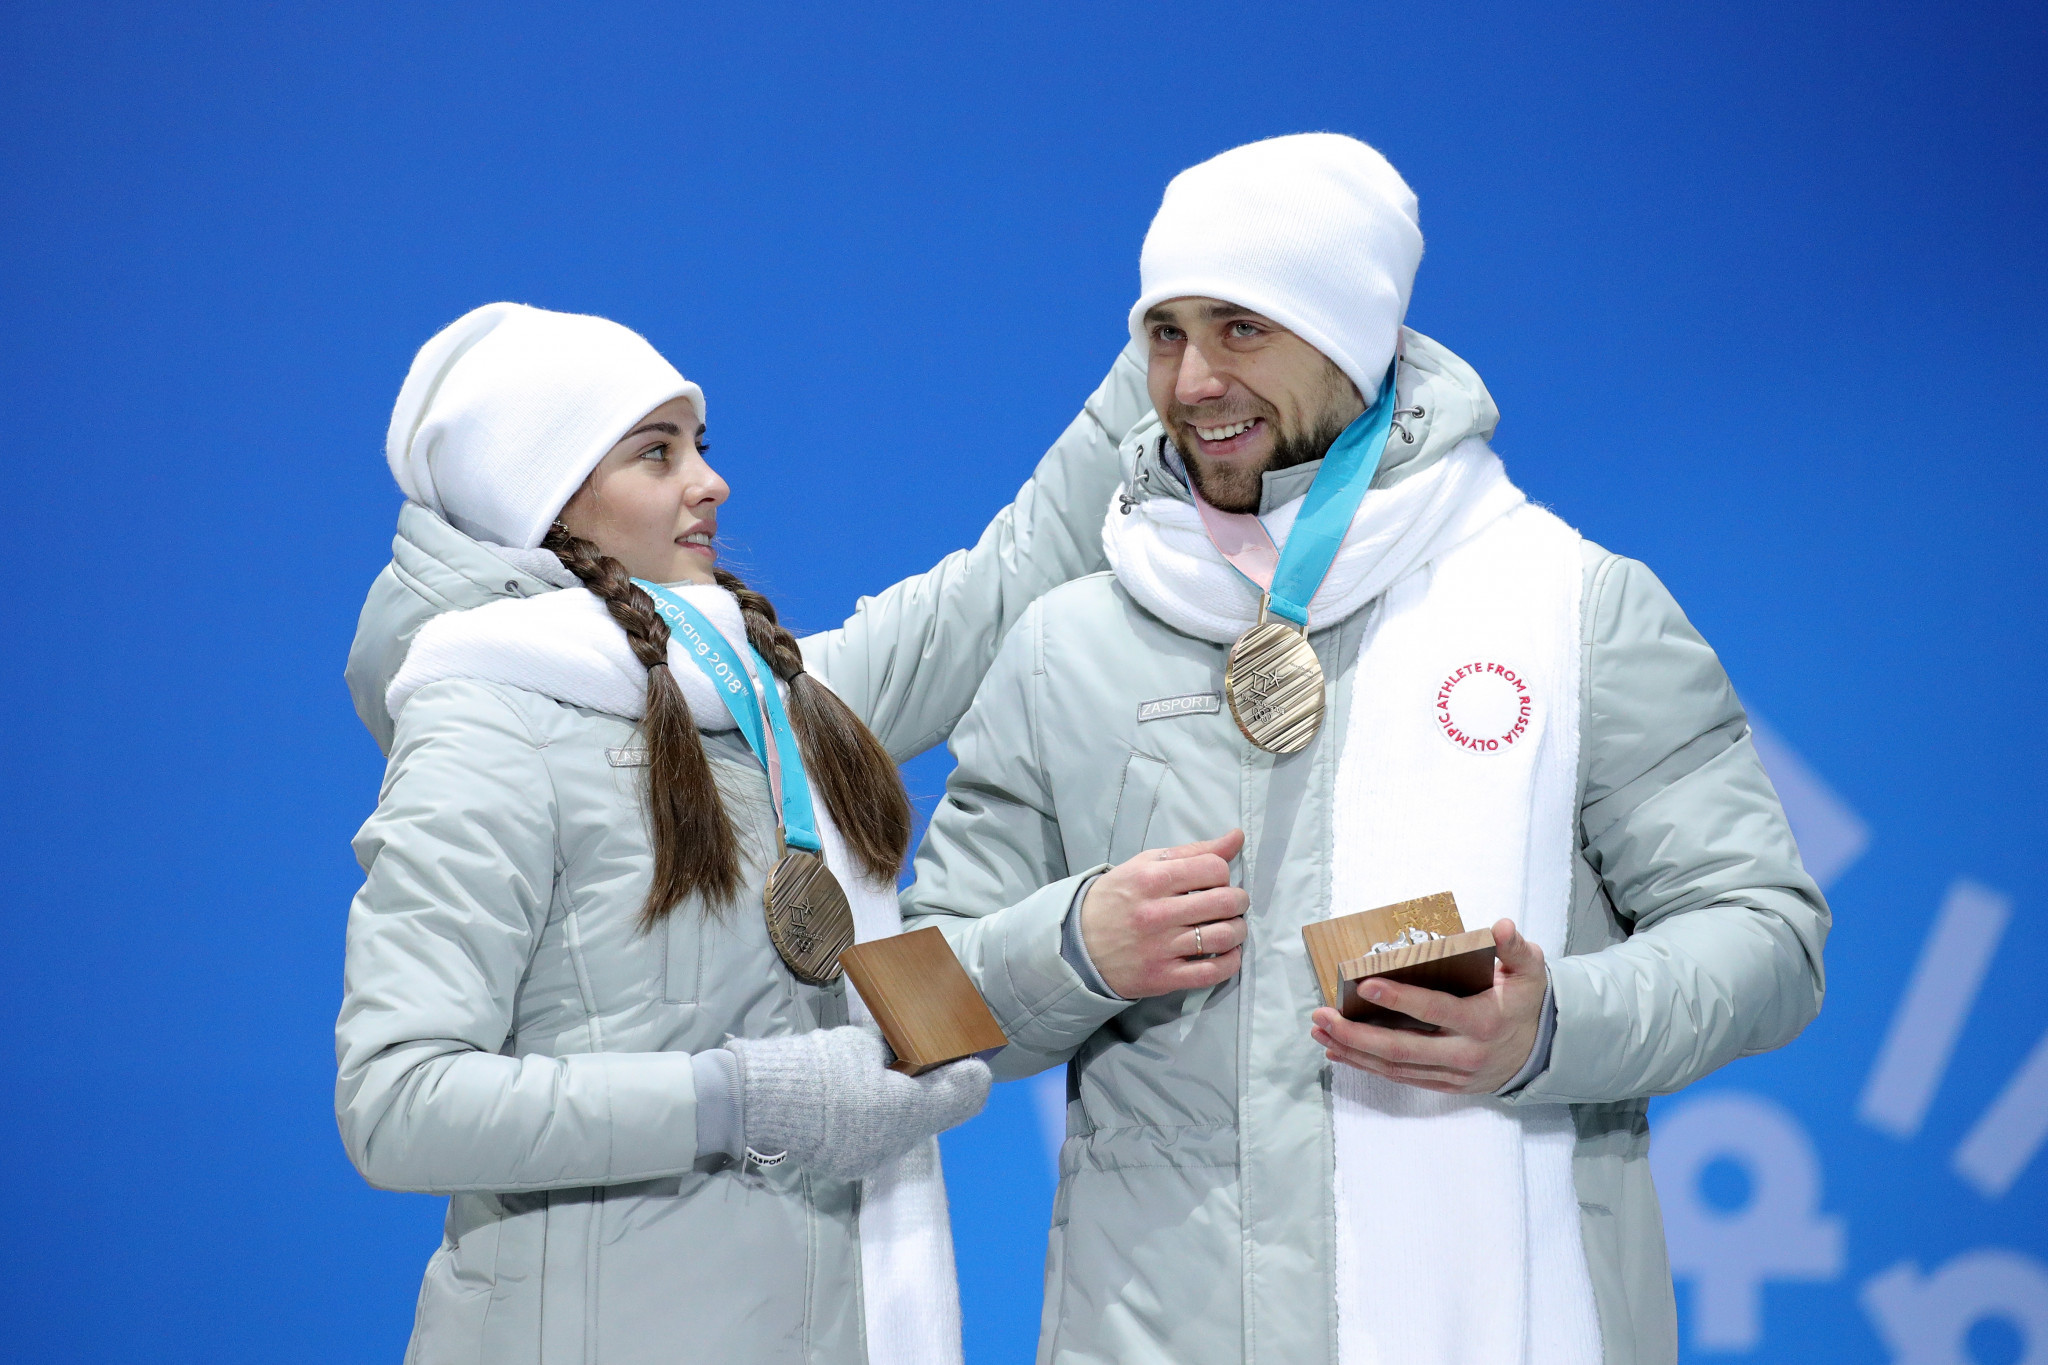 Aleksandr Krushelnitckii and wife Anastasia Bryzgalova were stripped of their Olympic mixed doubles bronze medals ©Getty Images